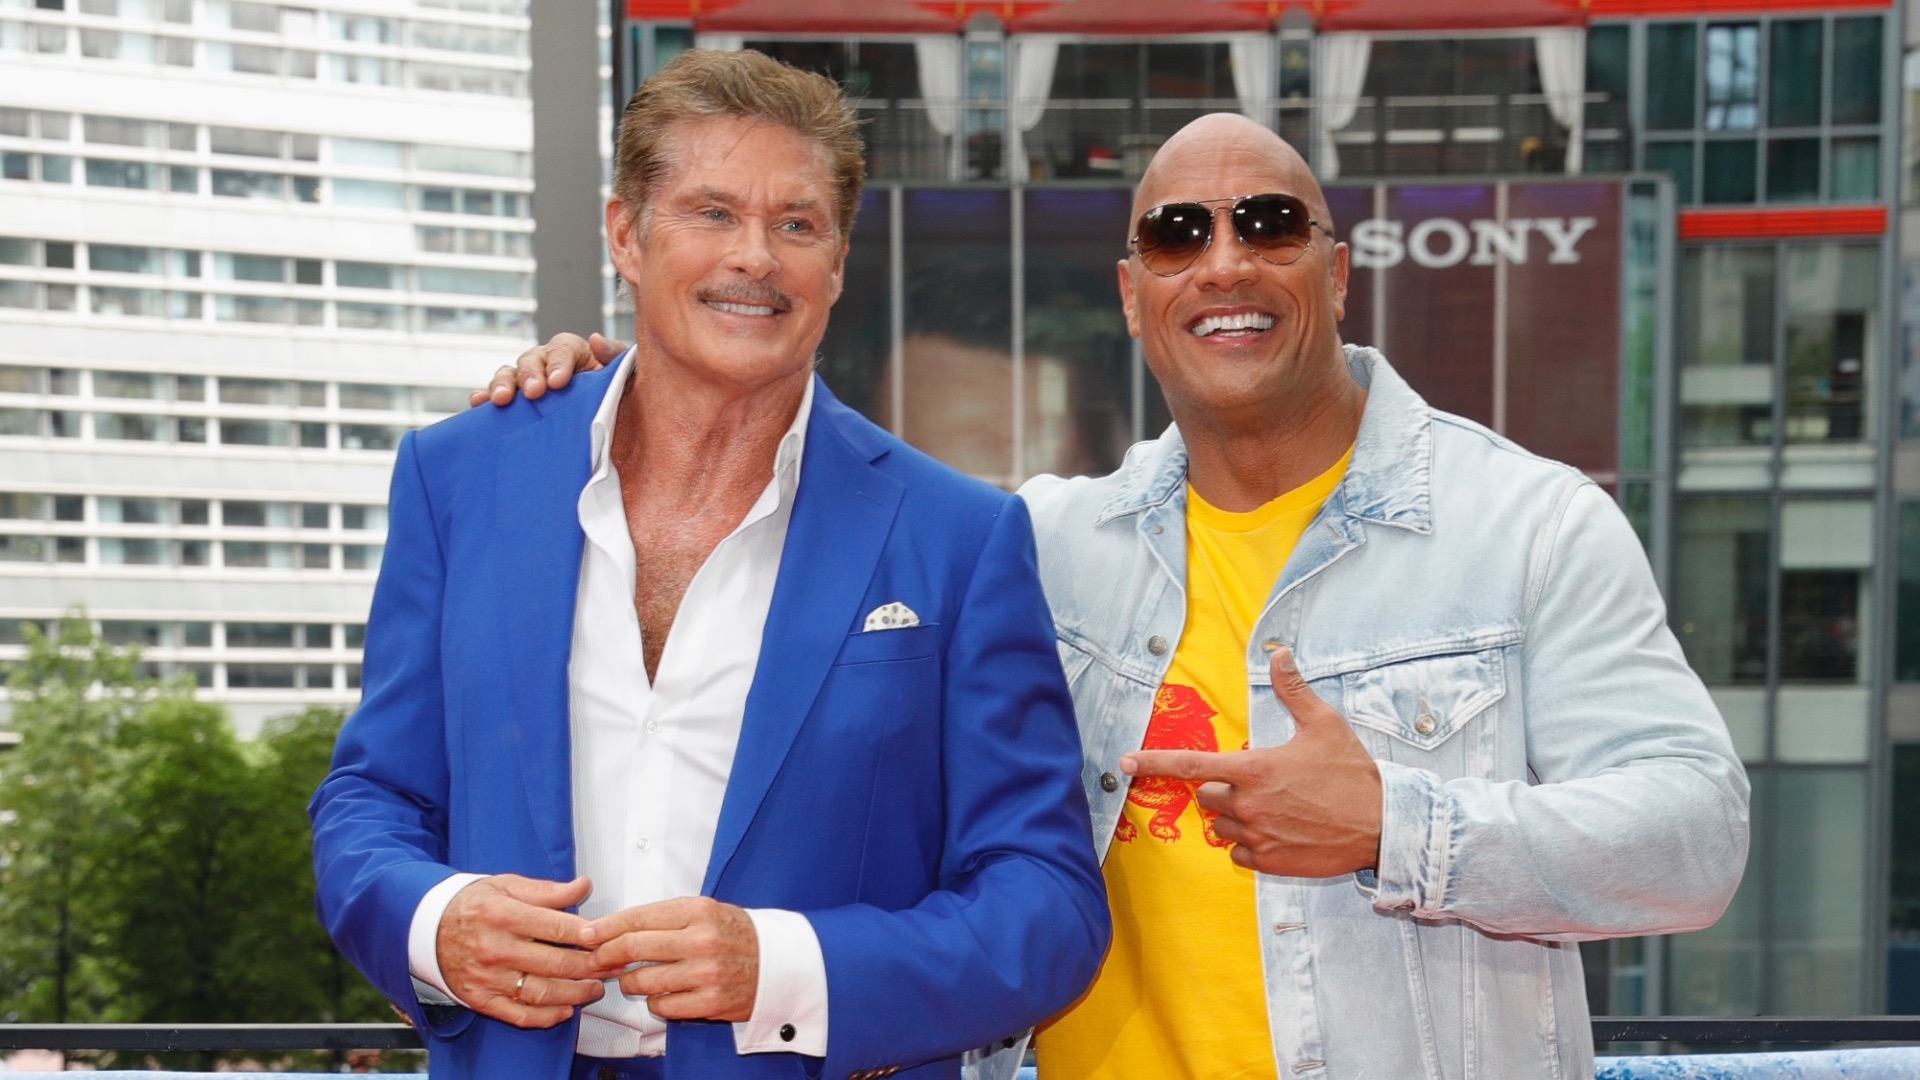 David Hasselhoff and Dwayne Johnson.